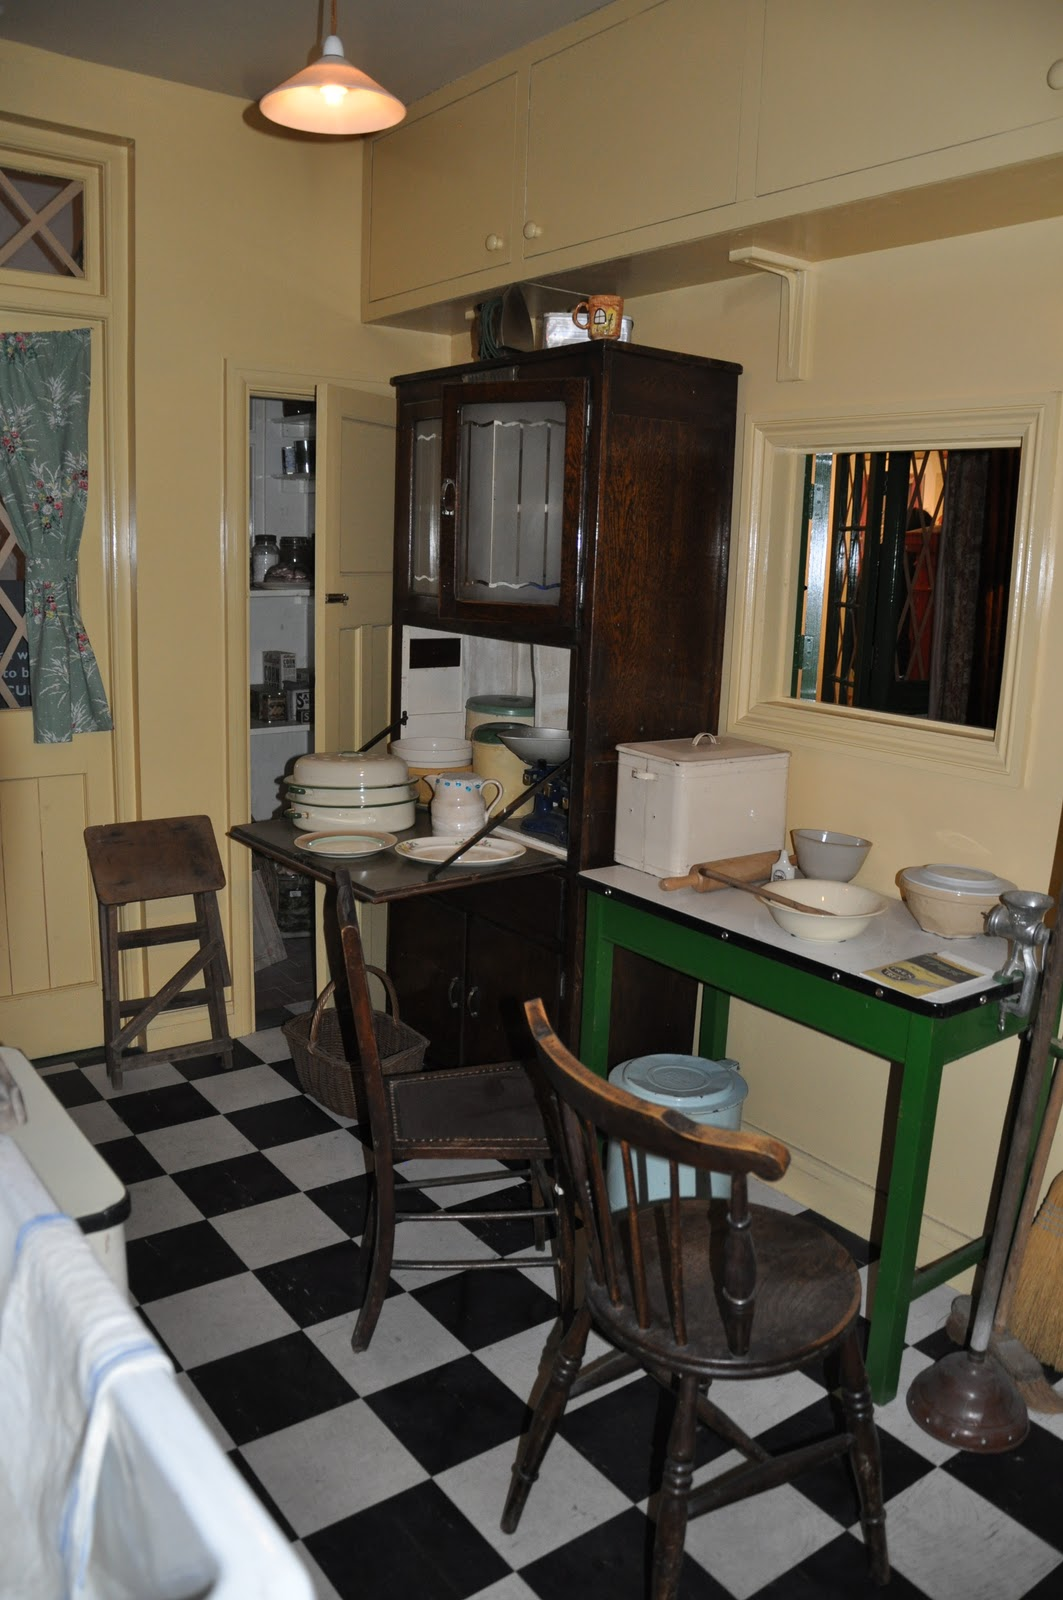 Cats Dogs And Eiderdowns The 1940 S House Imperial War